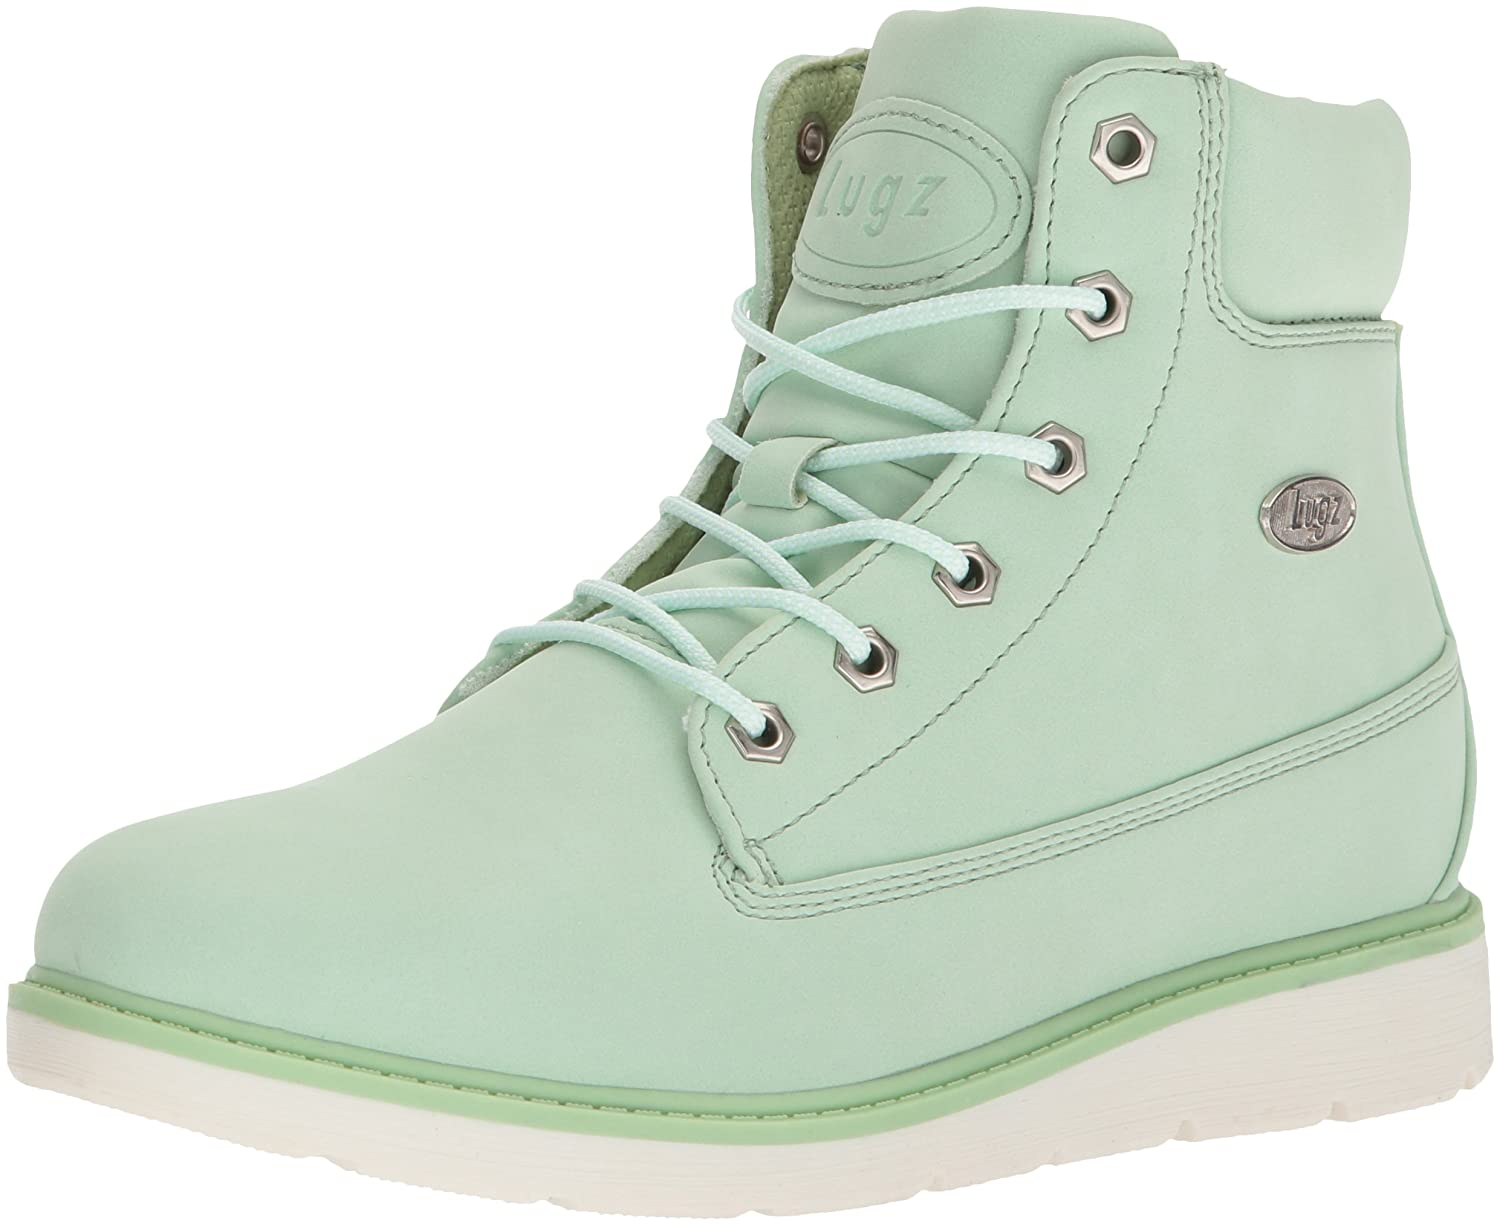 Lugz Women's Quill Hi Fashion Boot B073JX22D9 6 B(M) US|Mint/White